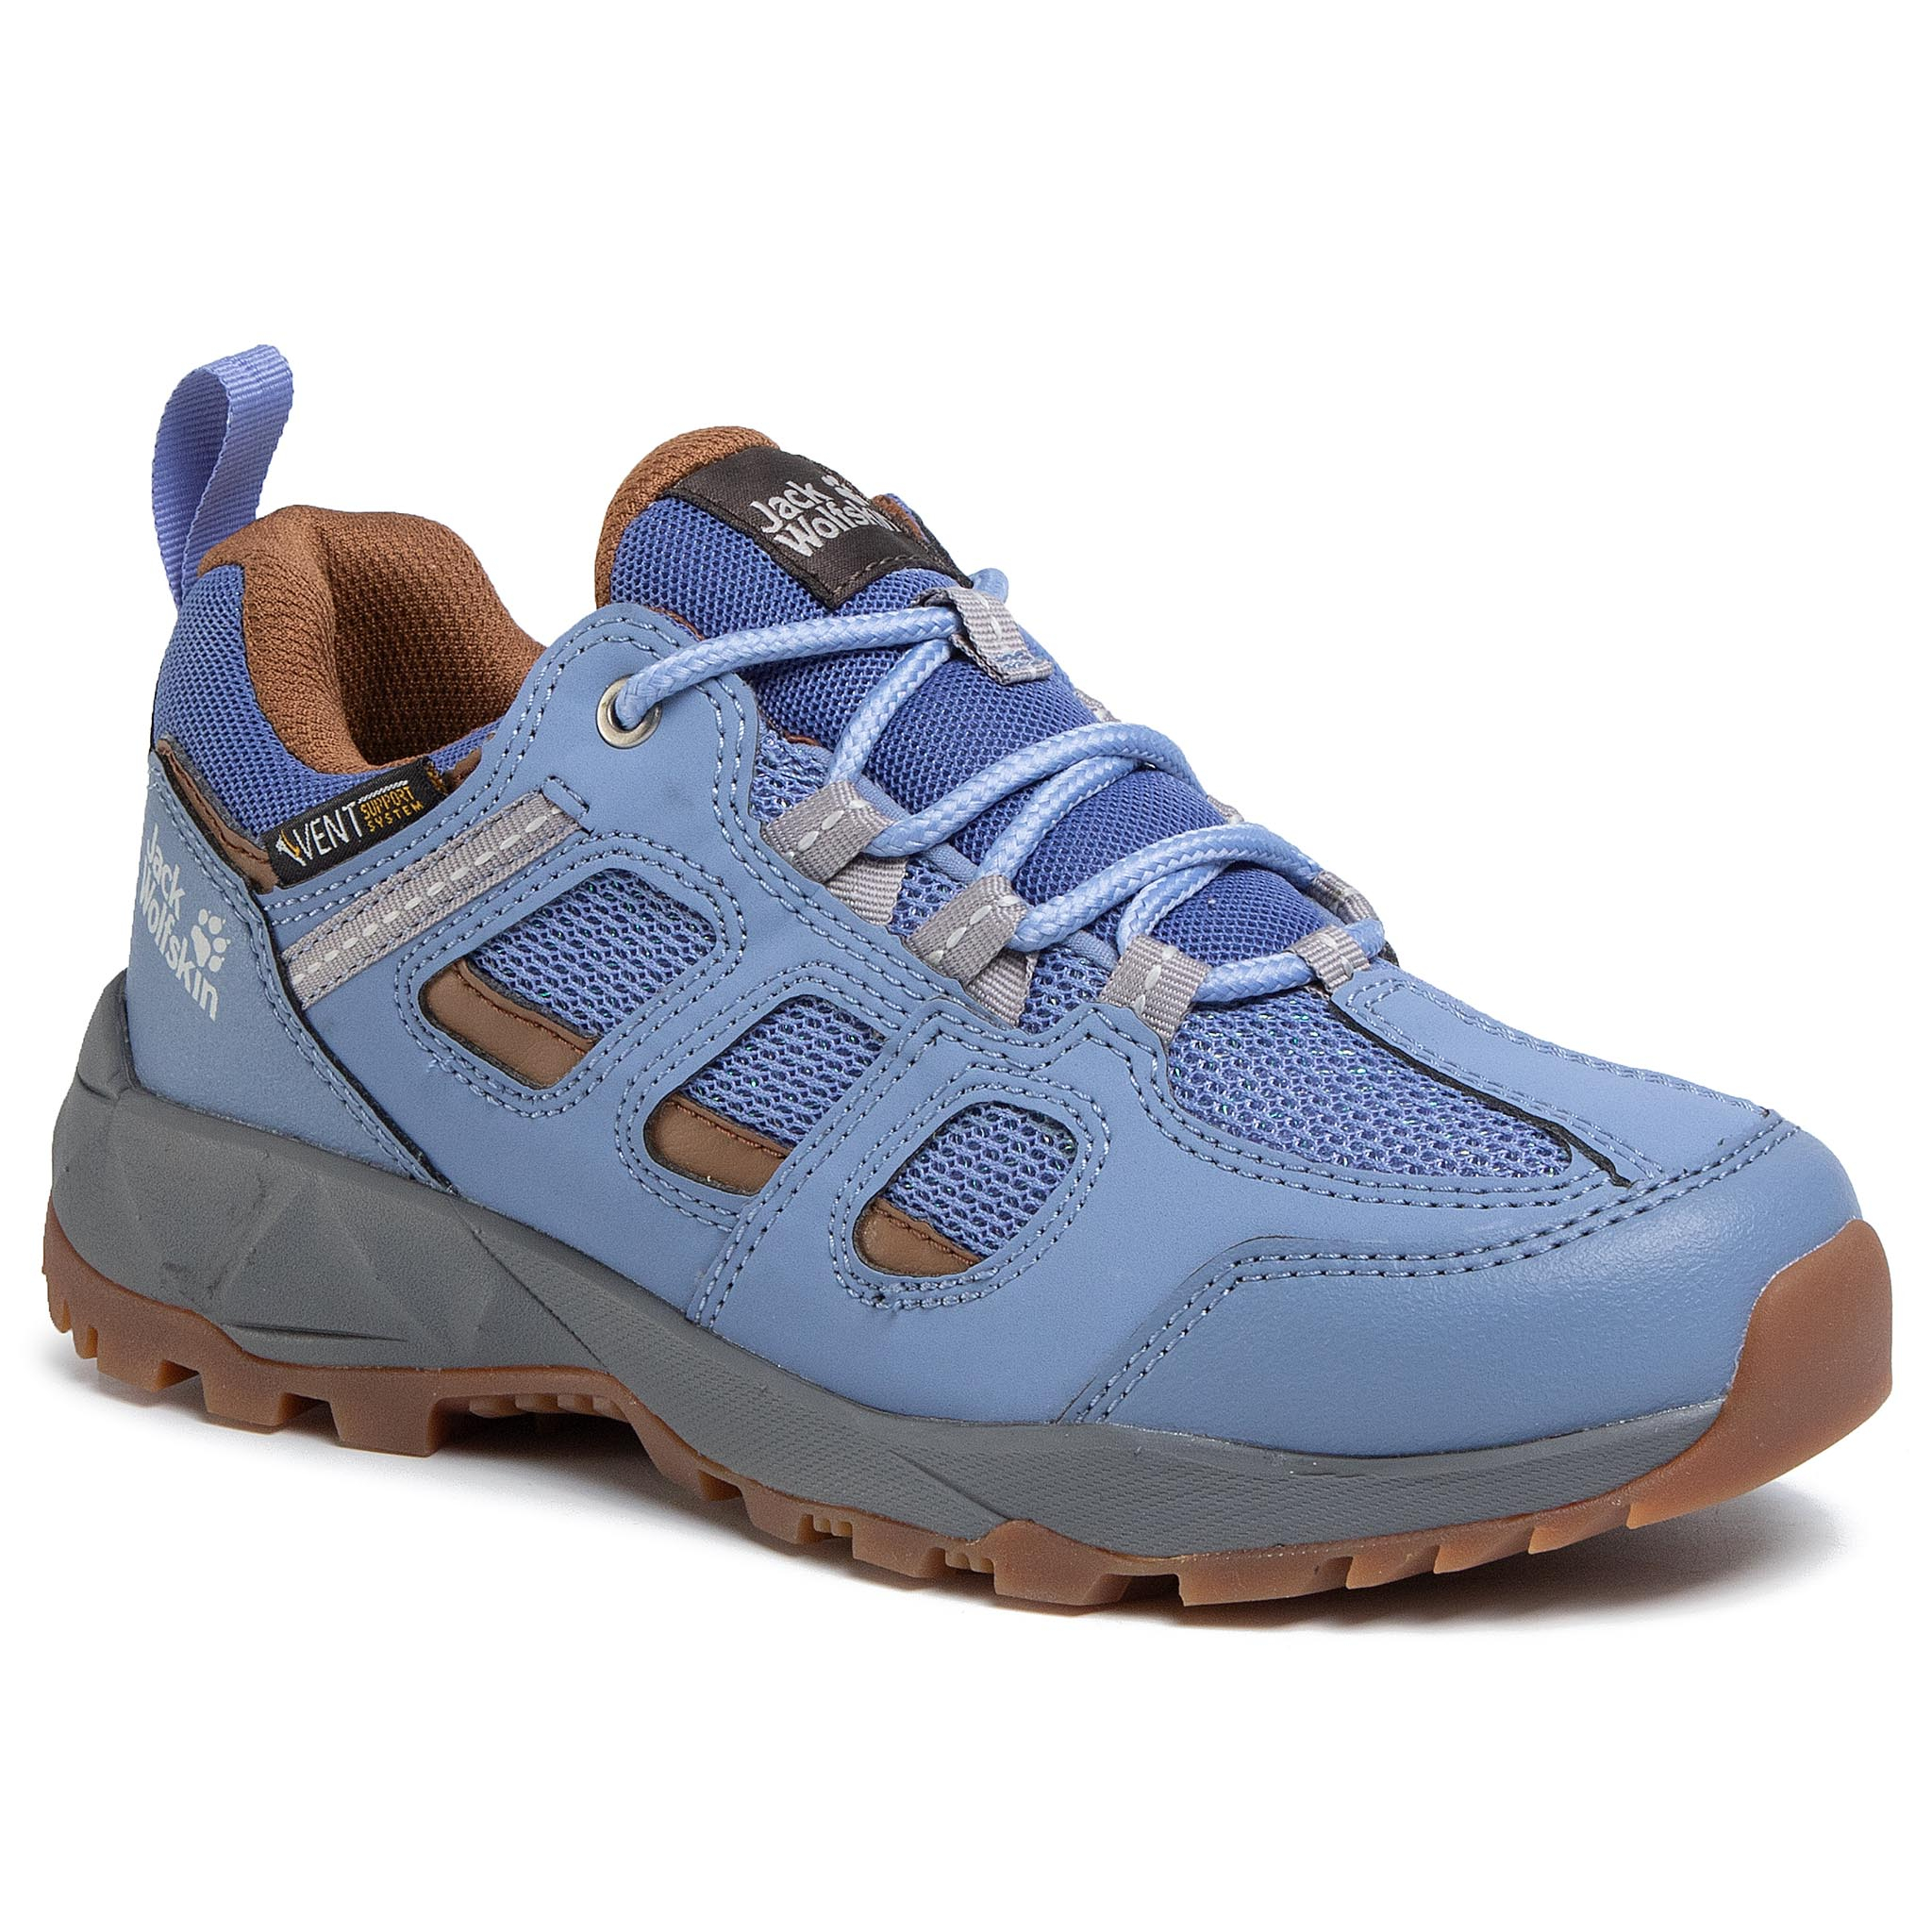 Trekkings Jack Wolfskin - Vojo Hike Xt Vent Low W 4039061 Light Blue/Brown imagine epantofi.ro 2021